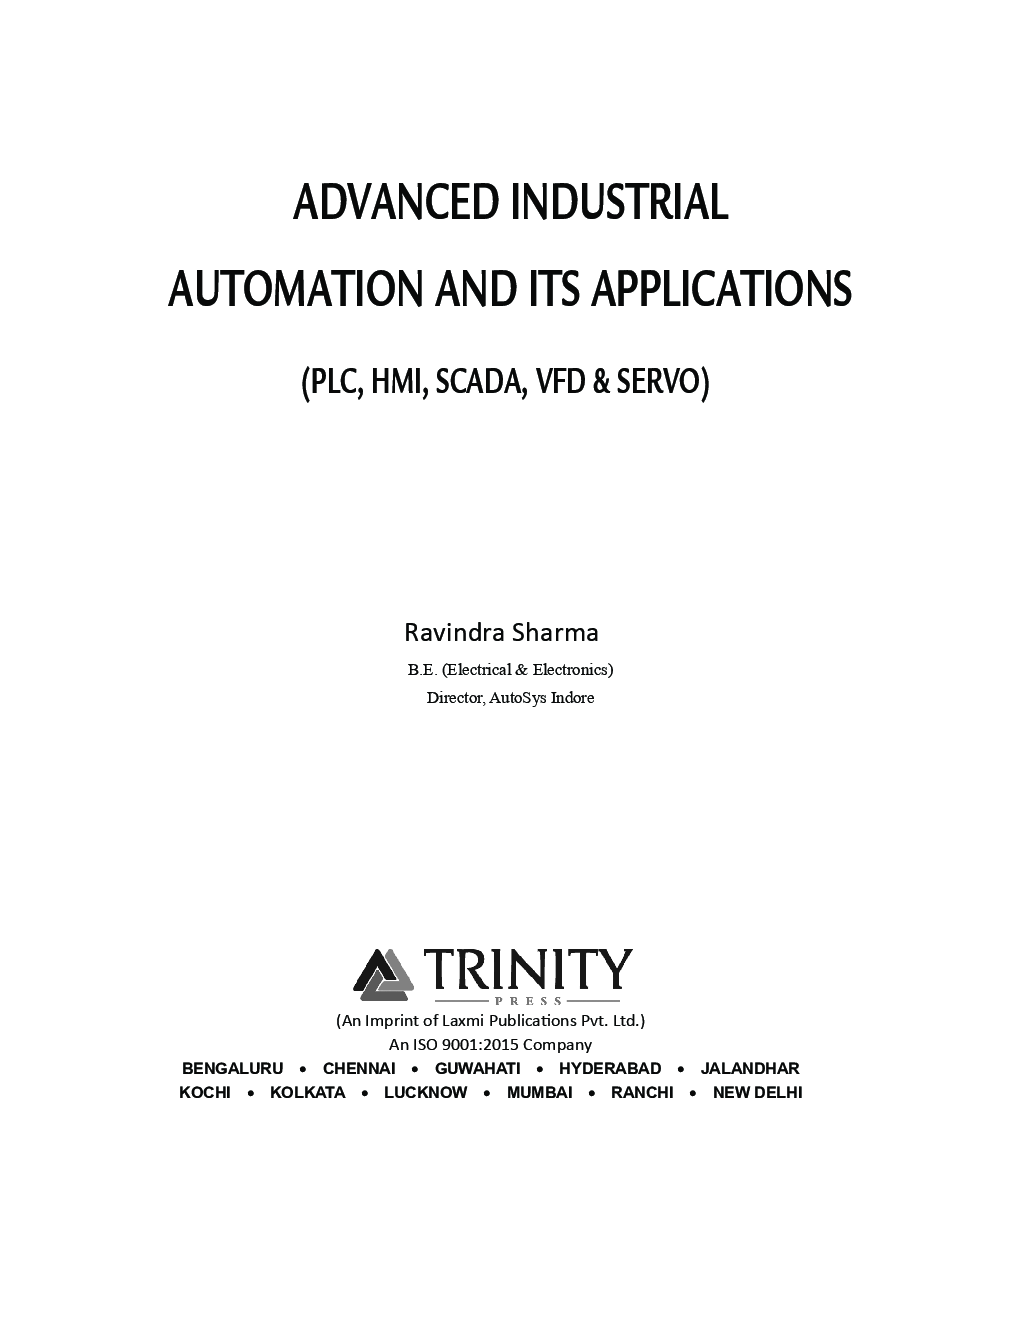 Advanced Industrial Automation And Its Applications - Page 5